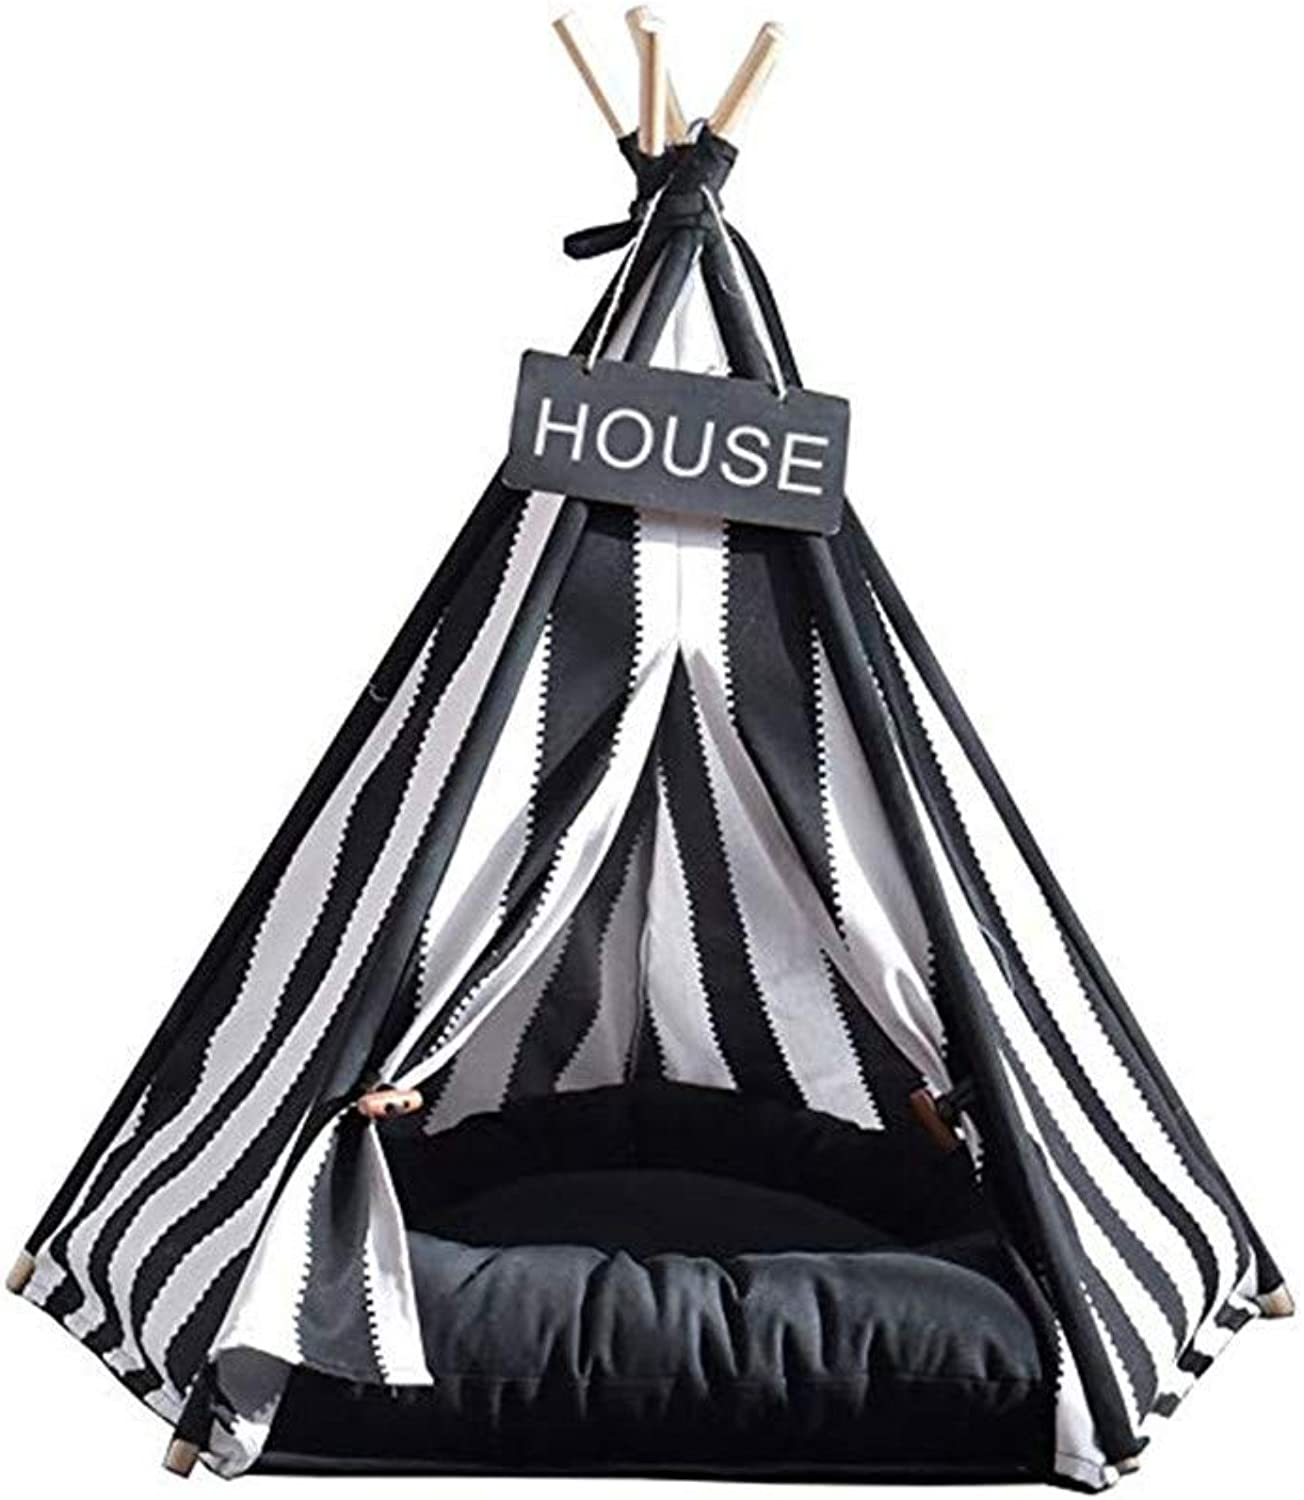 DJVD Pet Tent Bed Foldable Portable Washable Cotton Canvas Bed House For Dog(Puppy) & Cat  Black And White Strip Style